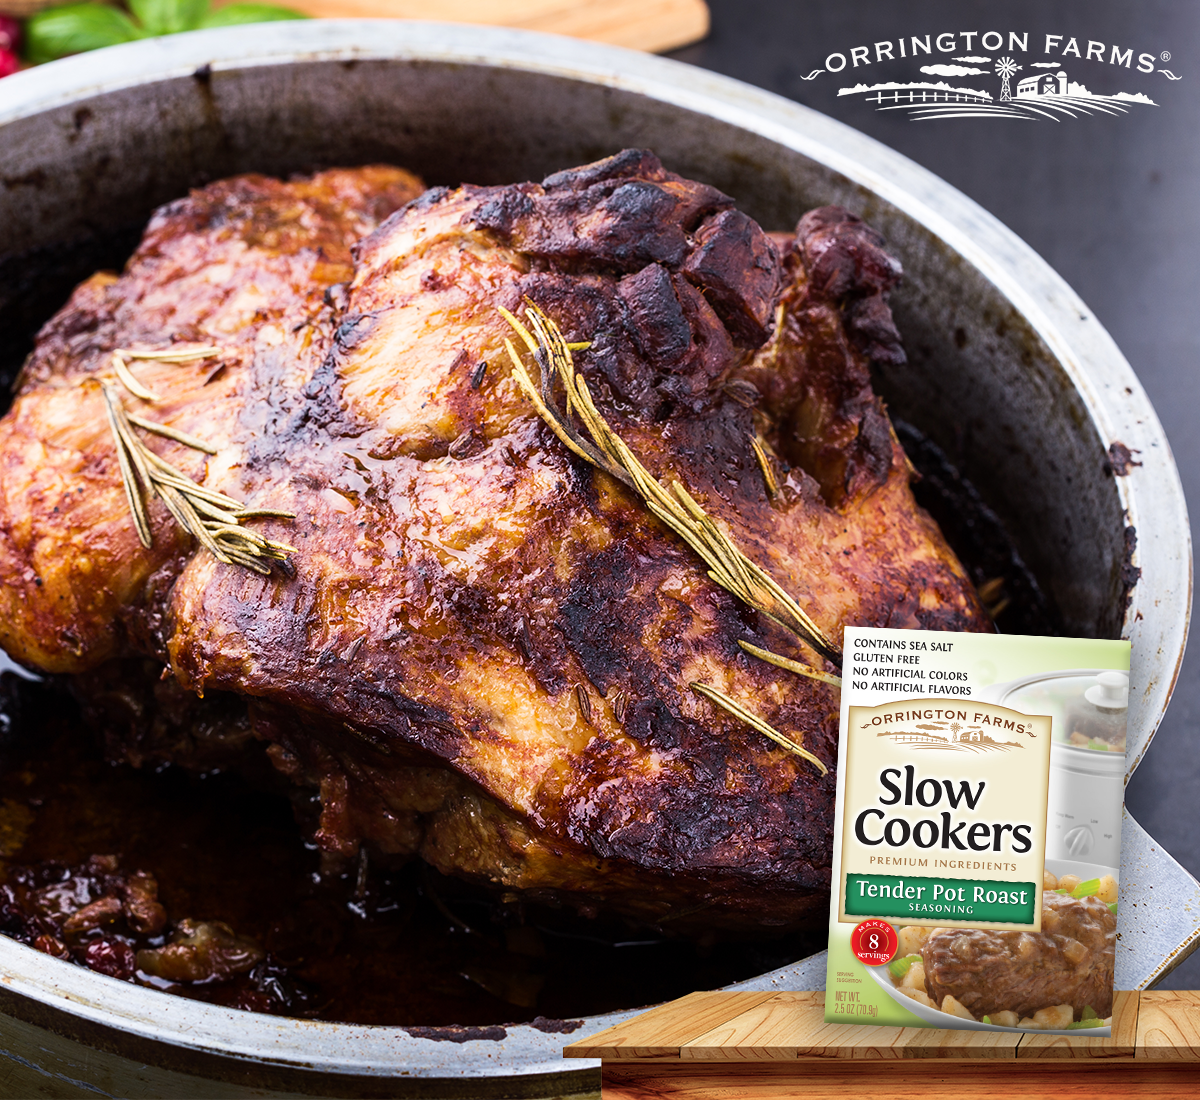 Make The Most Out Of Your Roast And Your Time With Our Tender Pot Roast Slow Cookers Mix Pot Roast Slow Cooker Pot Roast Seasoning